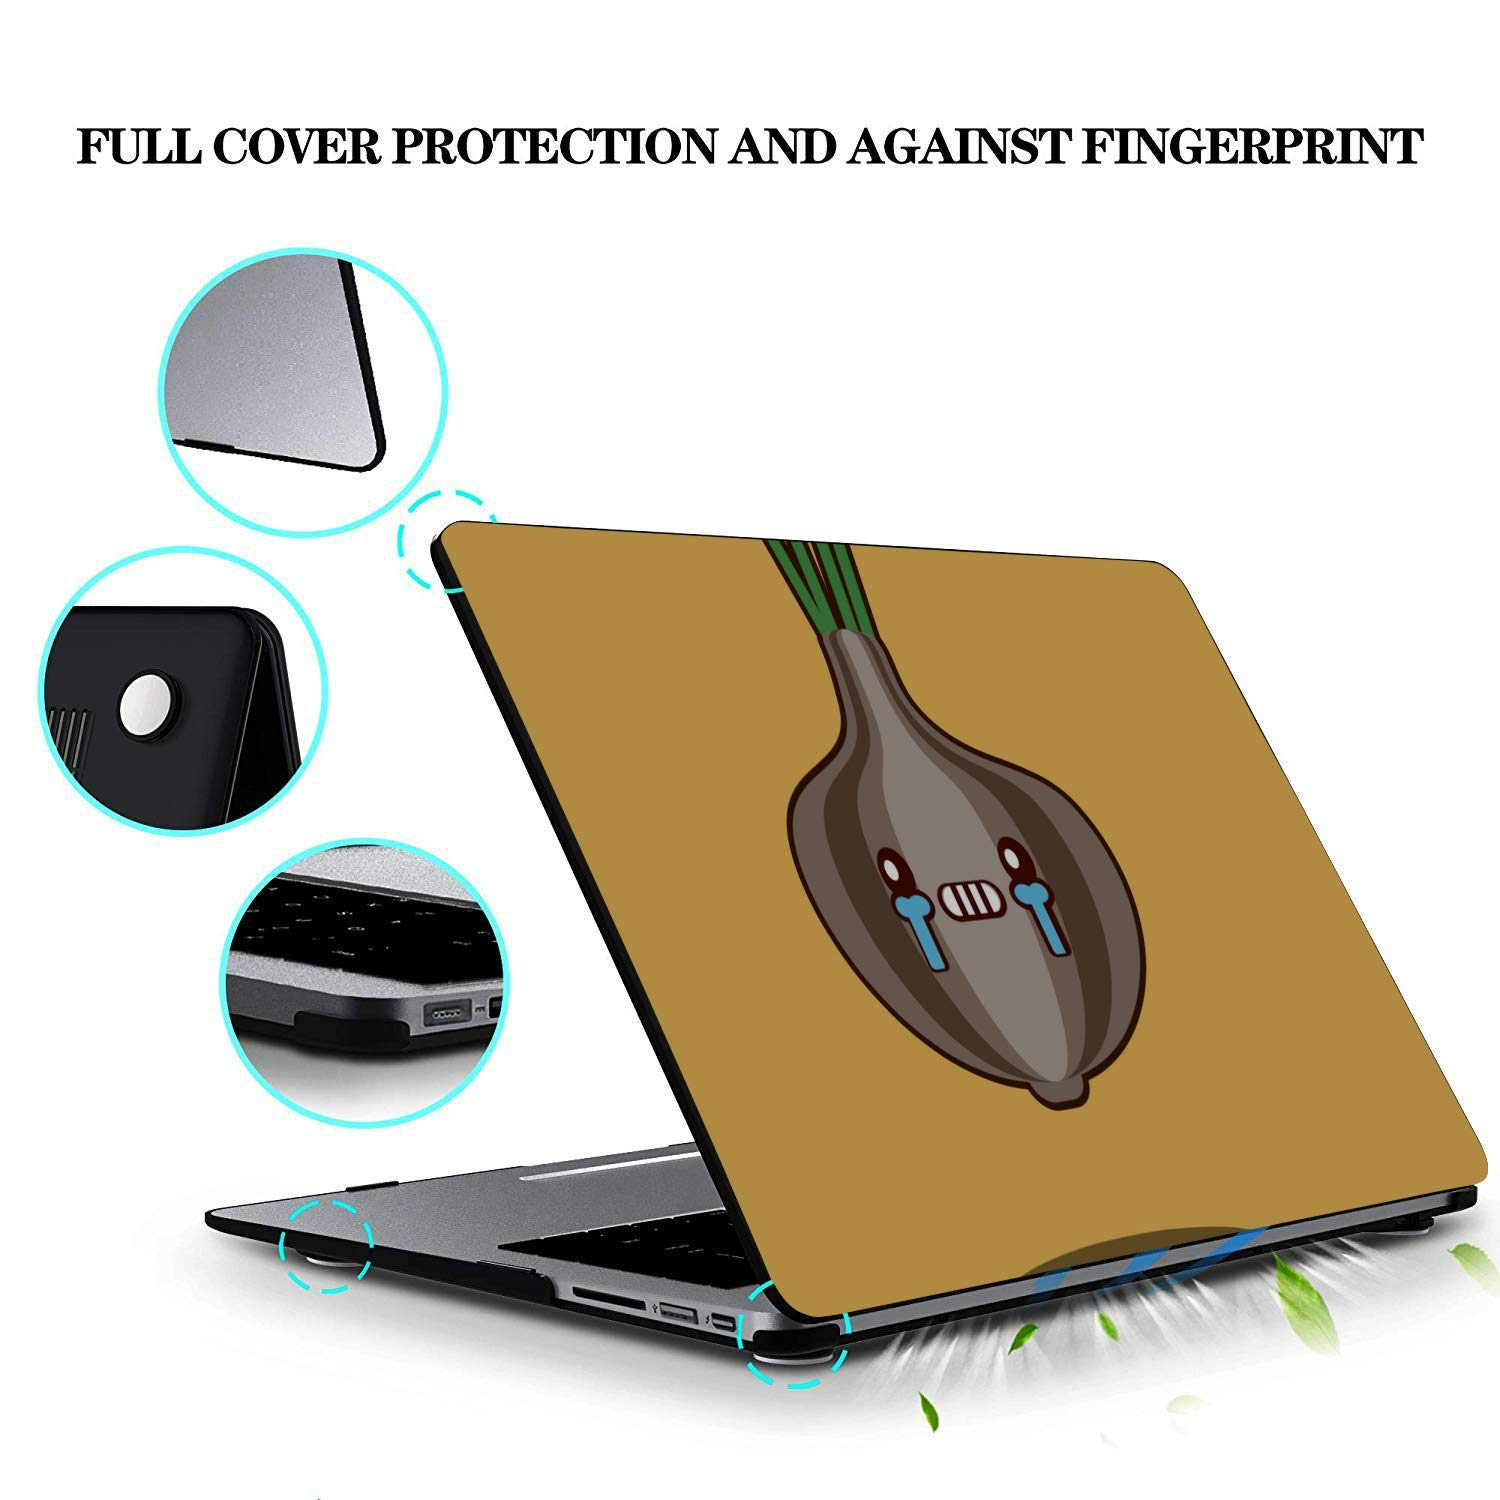 Cover for Laptop Cartoon Smiling Onion Vegetables Plastic Hard Shell Compatible Mac Air 11 Pro 13 15 Computer Cover Protection for MacBook 2016-2019 Version